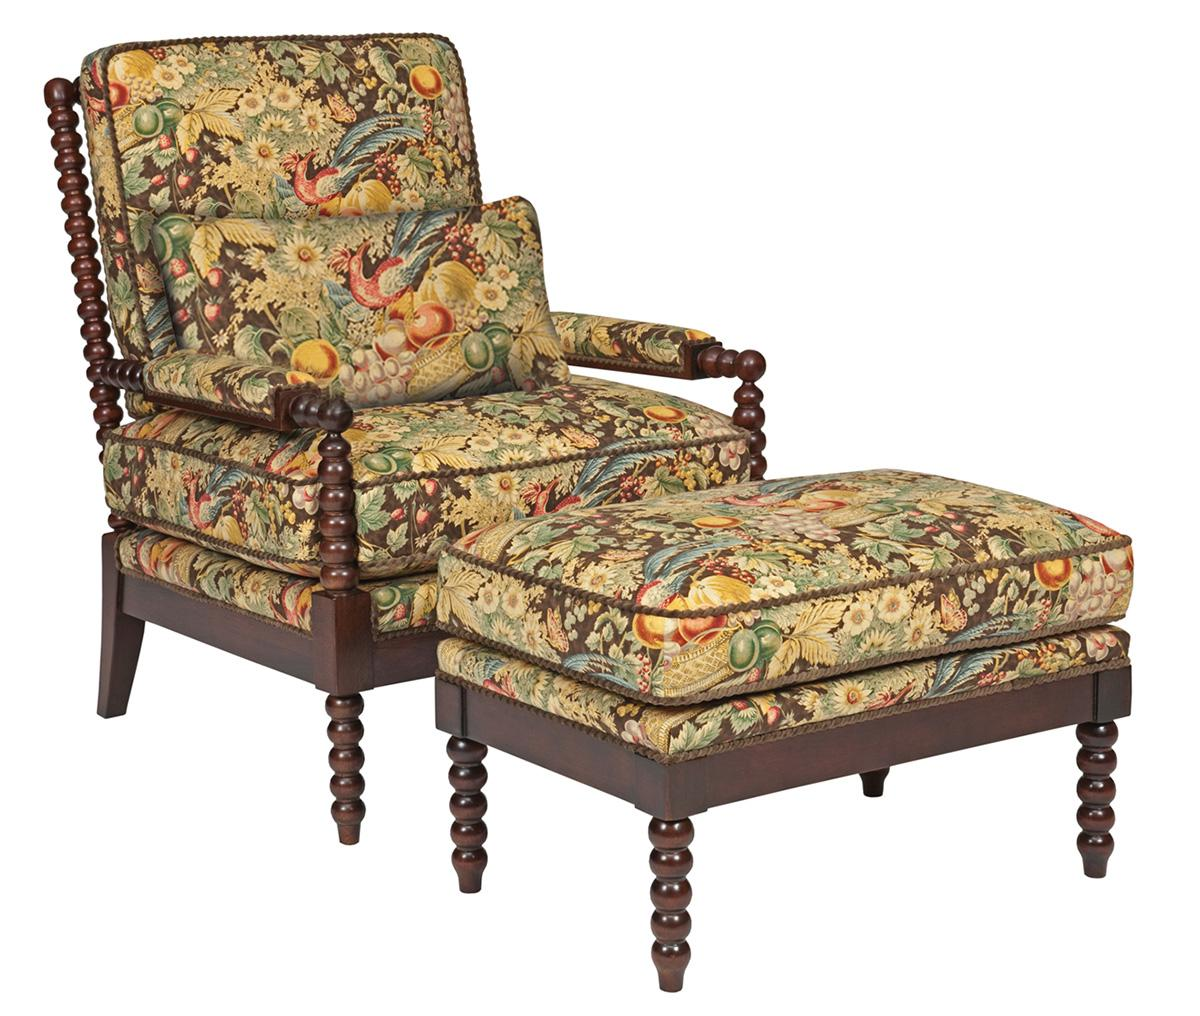 Accent Chairs Jenny Chair and Ottoman Set by Kincaid Furniture at Johnny Janosik